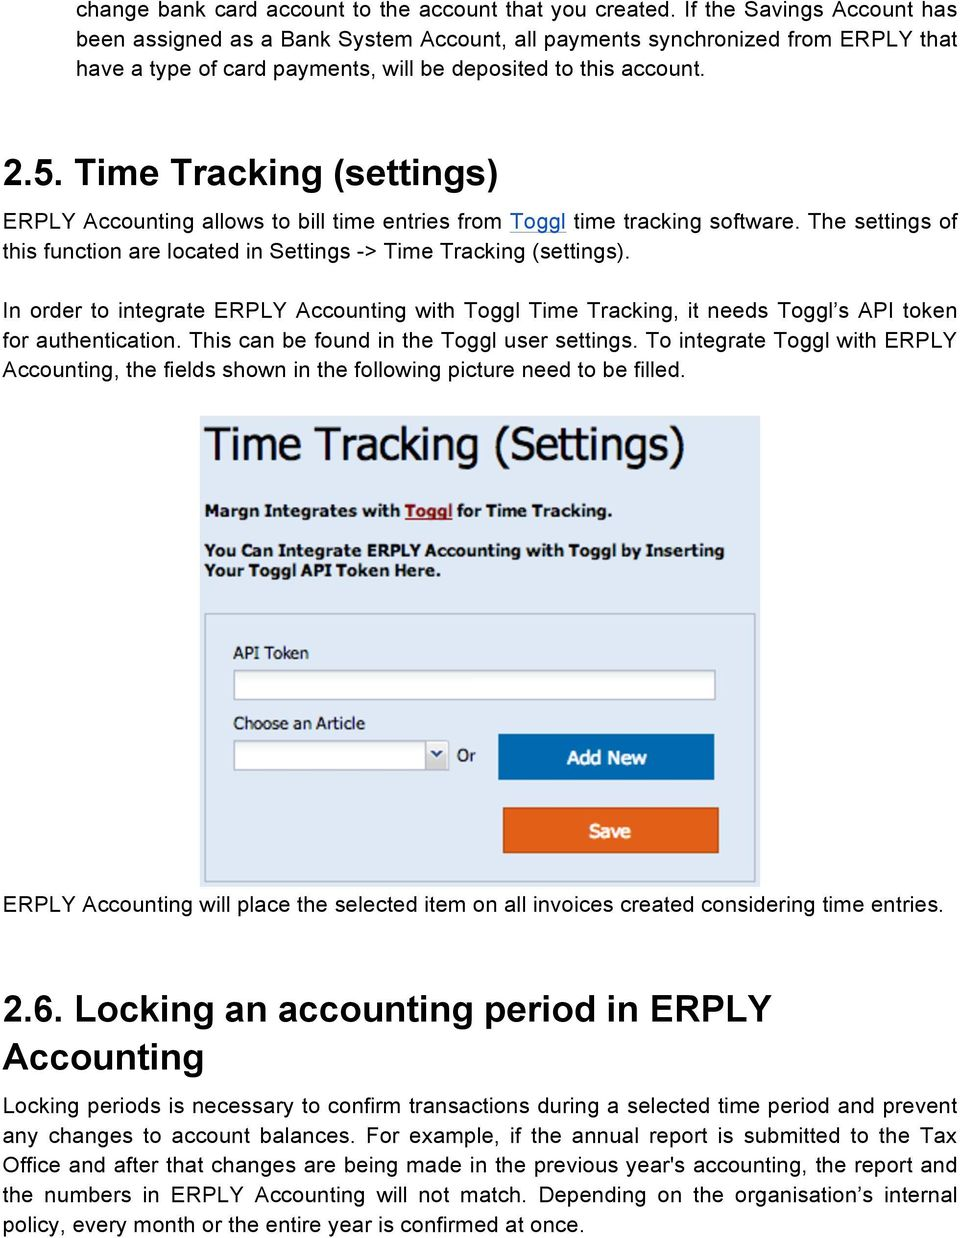 Time Tracking (settings) ERPLY Accounting allows to bill time entries from Toggl time tracking software. The settings of this function are located in Settings -> Time Tracking (settings).